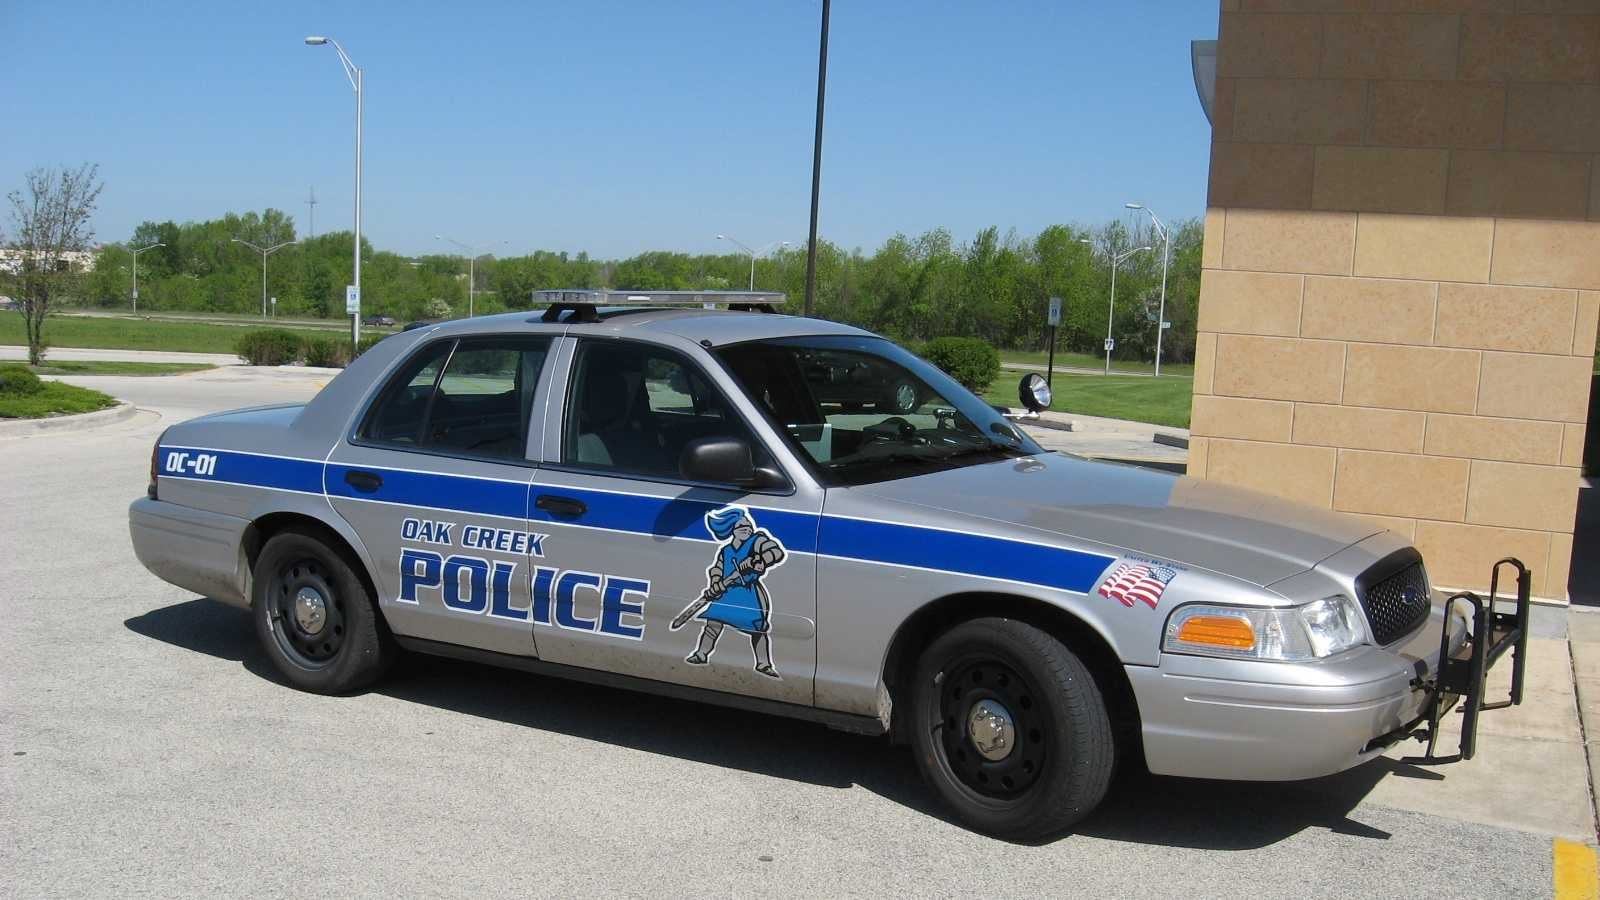 oak creek police car.jpg